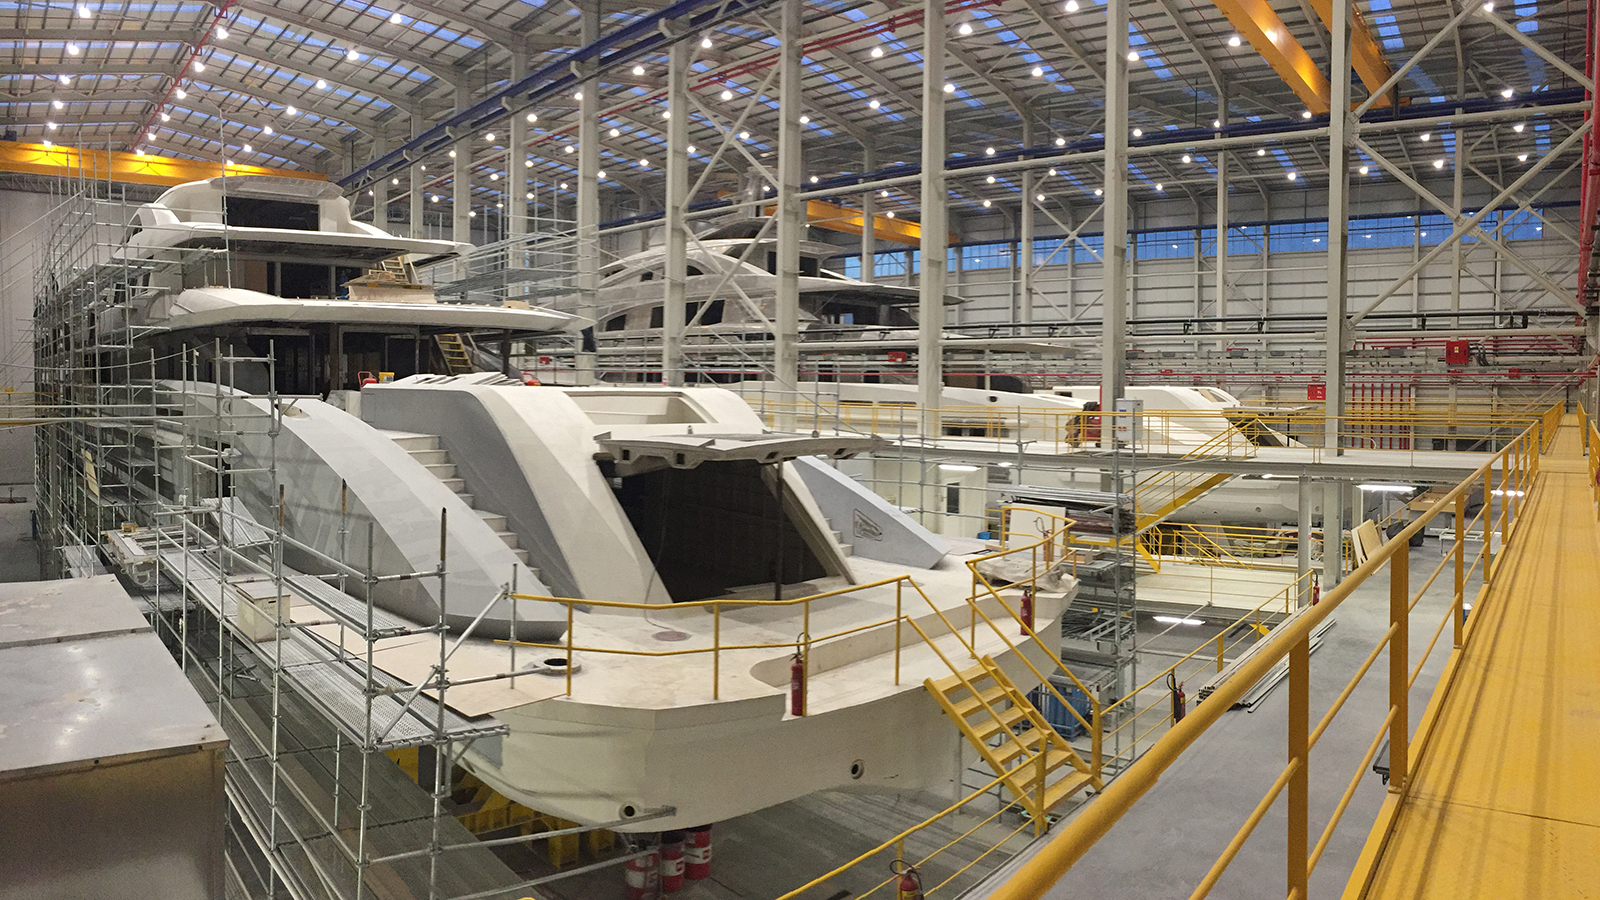 aft-view-of-the-two-bilgin-263-yachts-under-construction